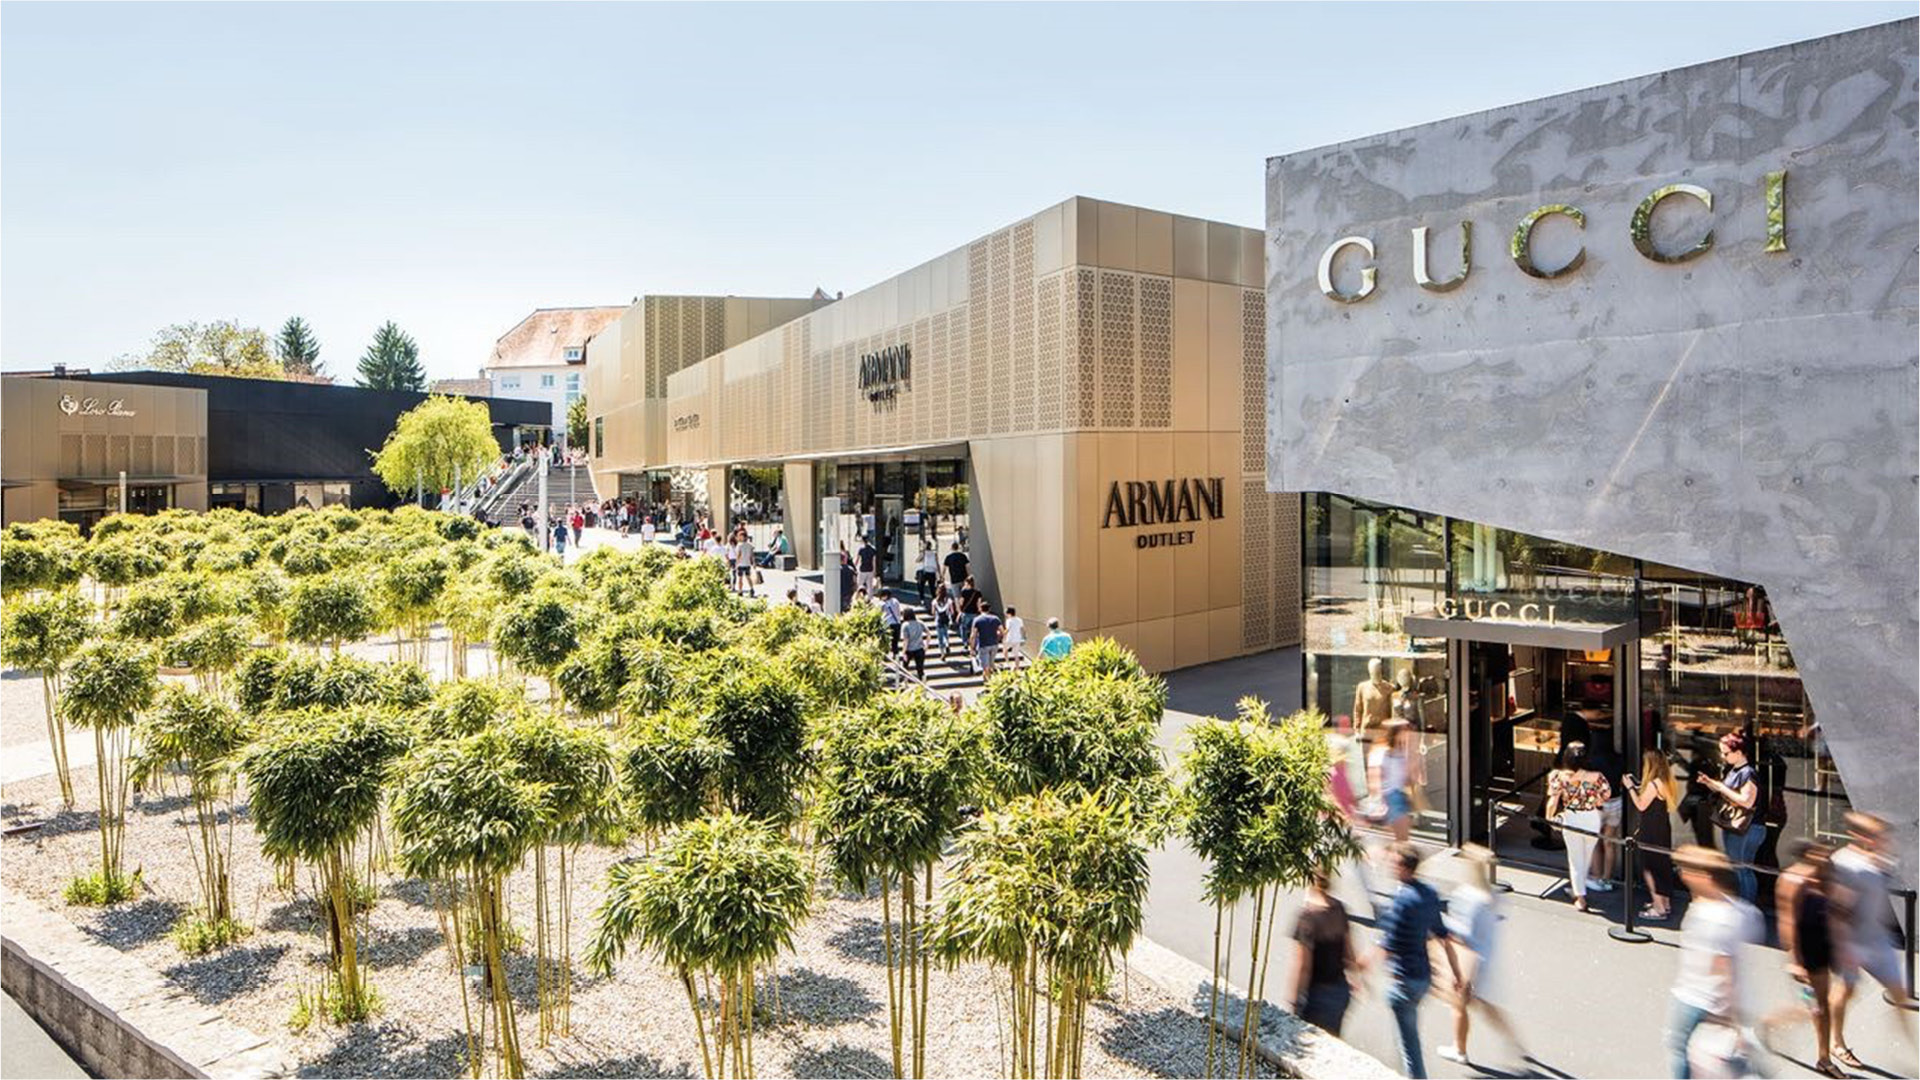 Bettdecken Outlet Metzingen Germany's Outletcity Metzingen Voted As The Most